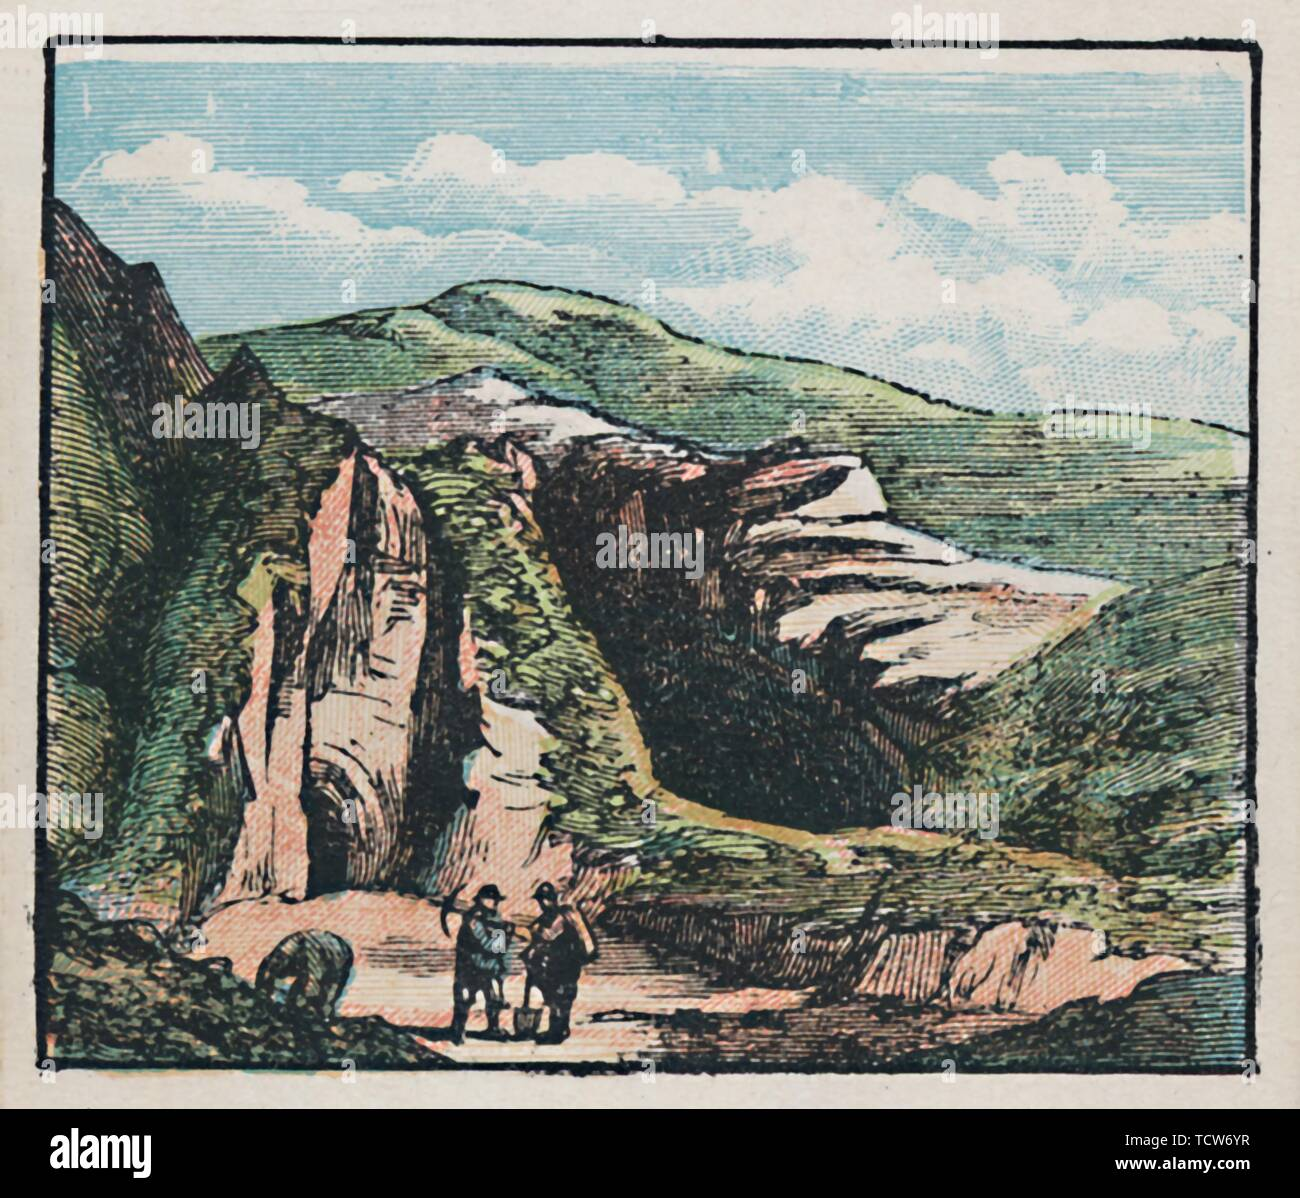 """'Bakewell', c1910. 'Many Mines and Quarries in the neighbourhood. Population, 3,070.' Industrial scene near Bakewell in Derbyshire. From """"The Counties of England - A Geographical Game: 4th Series"""". [Jaques & Son, Ltd., London] - Stock Image"""